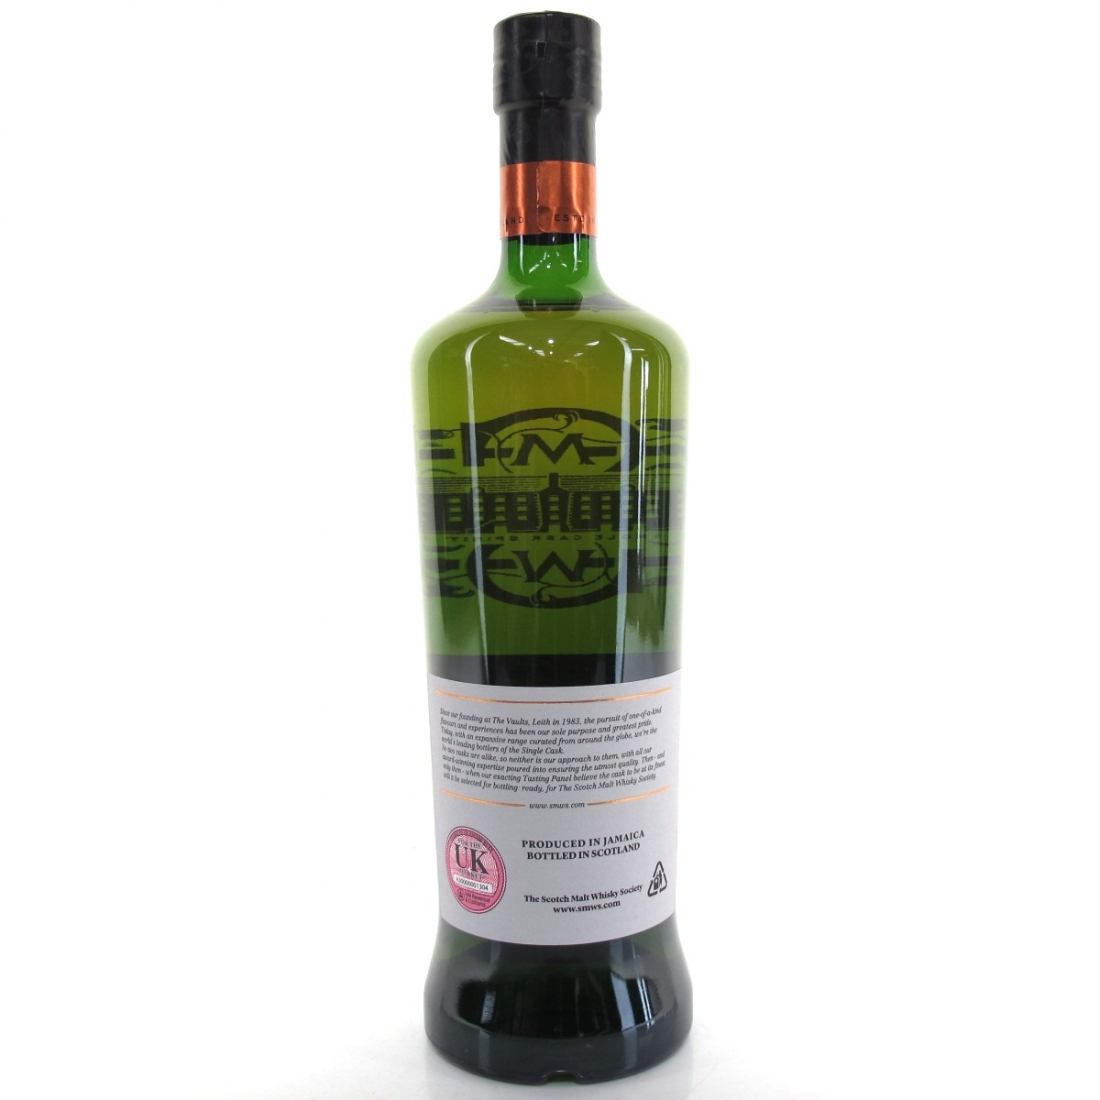 Hampden 2000 SMWS 16 Year Old R7.1